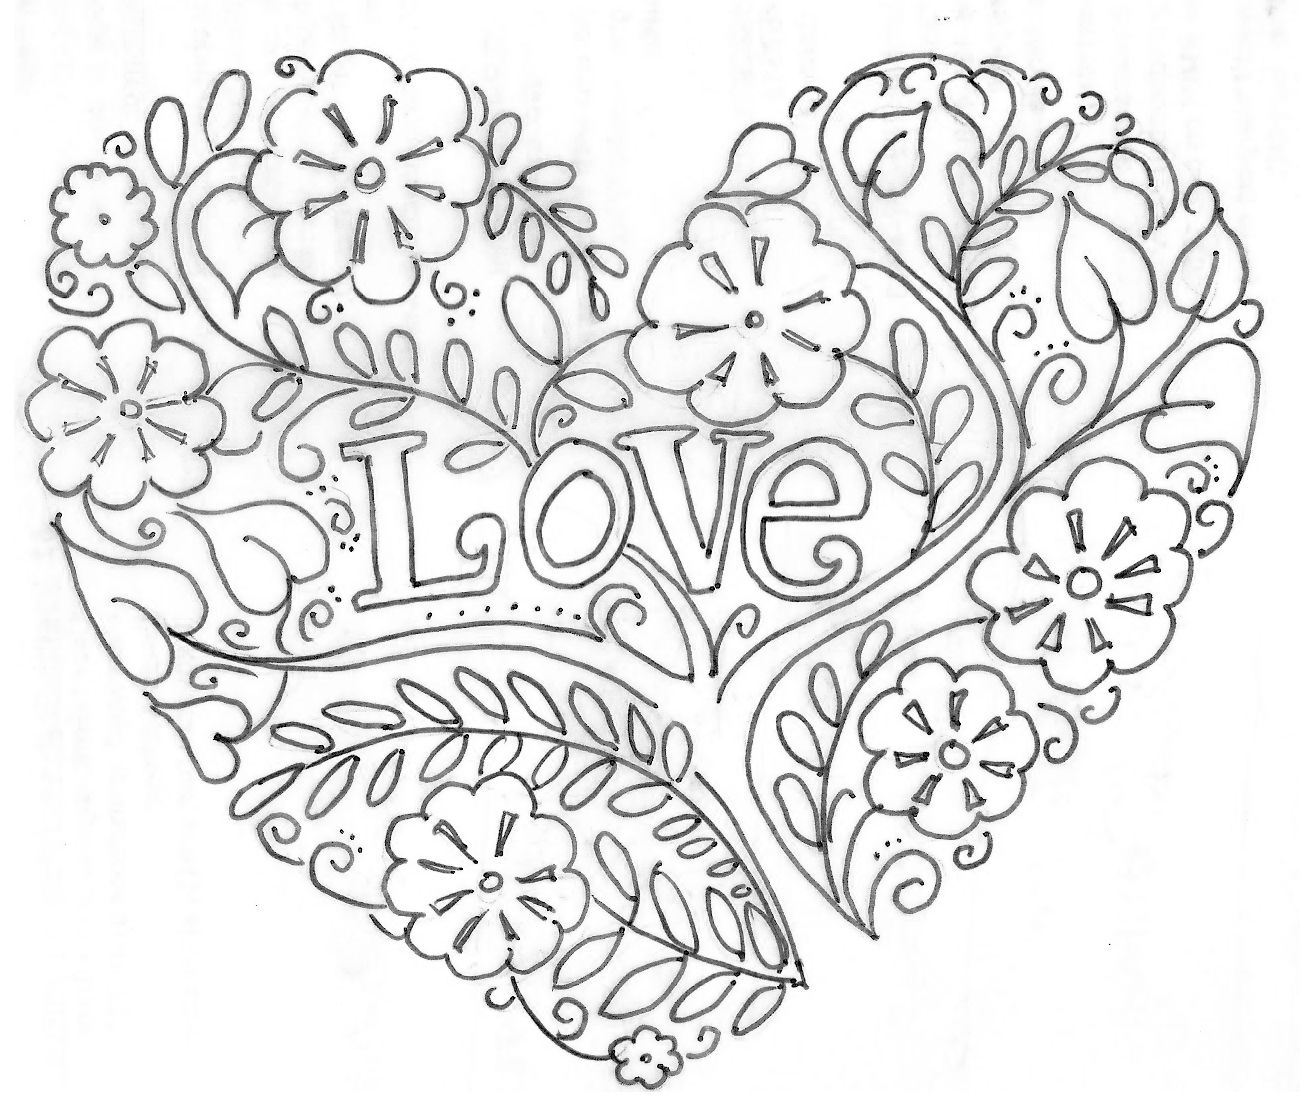 beautiful flower heart coloring pages how to draw a heart with a rose by dawn heart coloring heart pages beautiful coloring flower